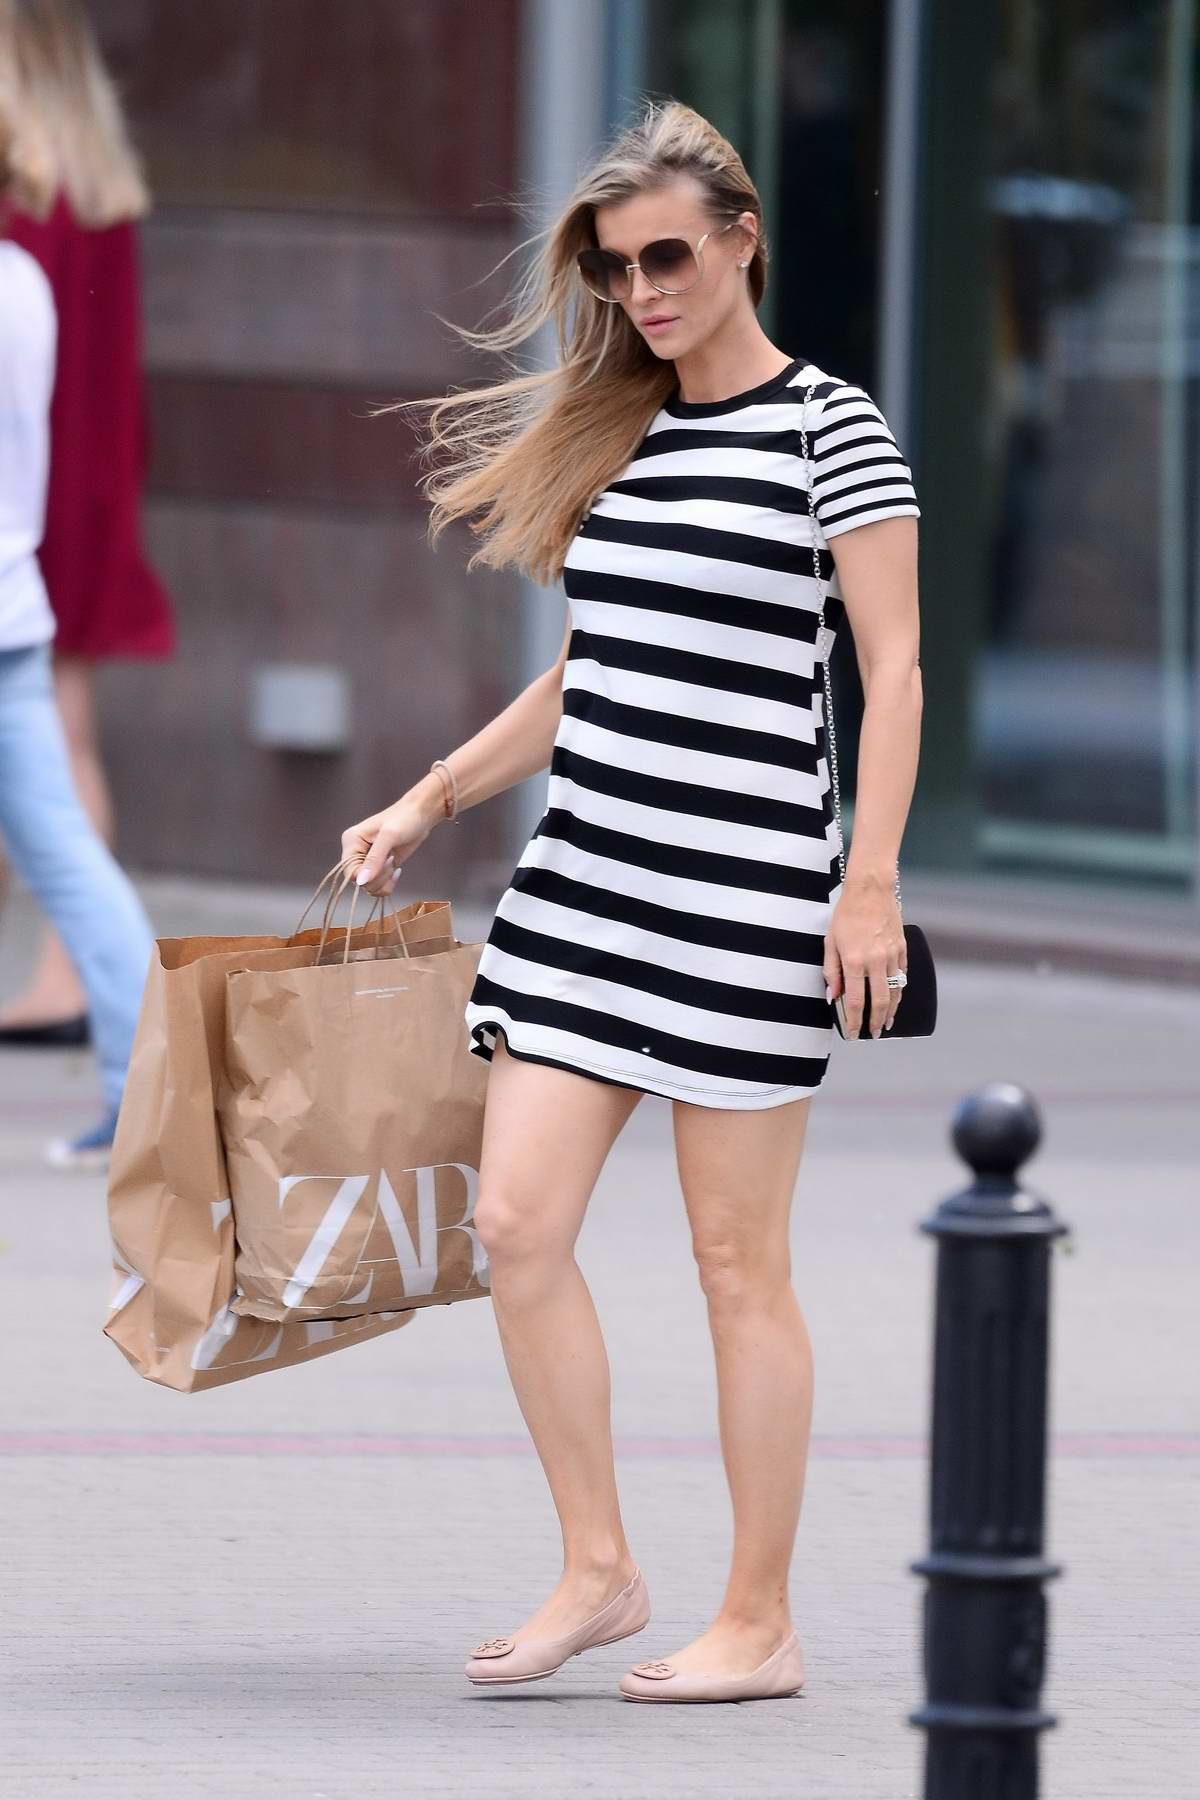 Joanna Krupa shows off her baby bump as she steps out in a monochrome striped dress in Warsaw, Poland